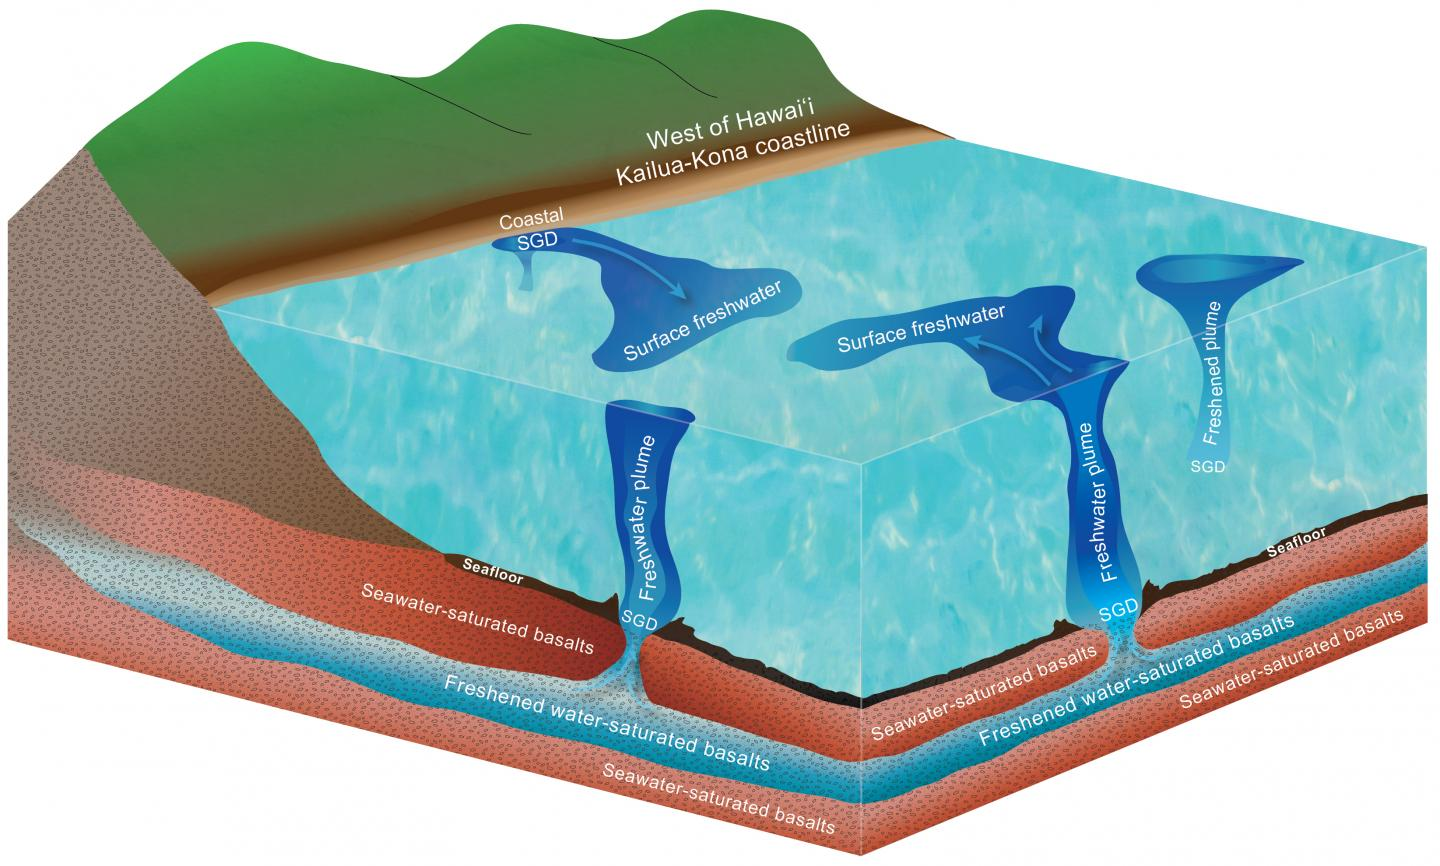 Conceptual illustration showing freshwater plumes at sea.jpg